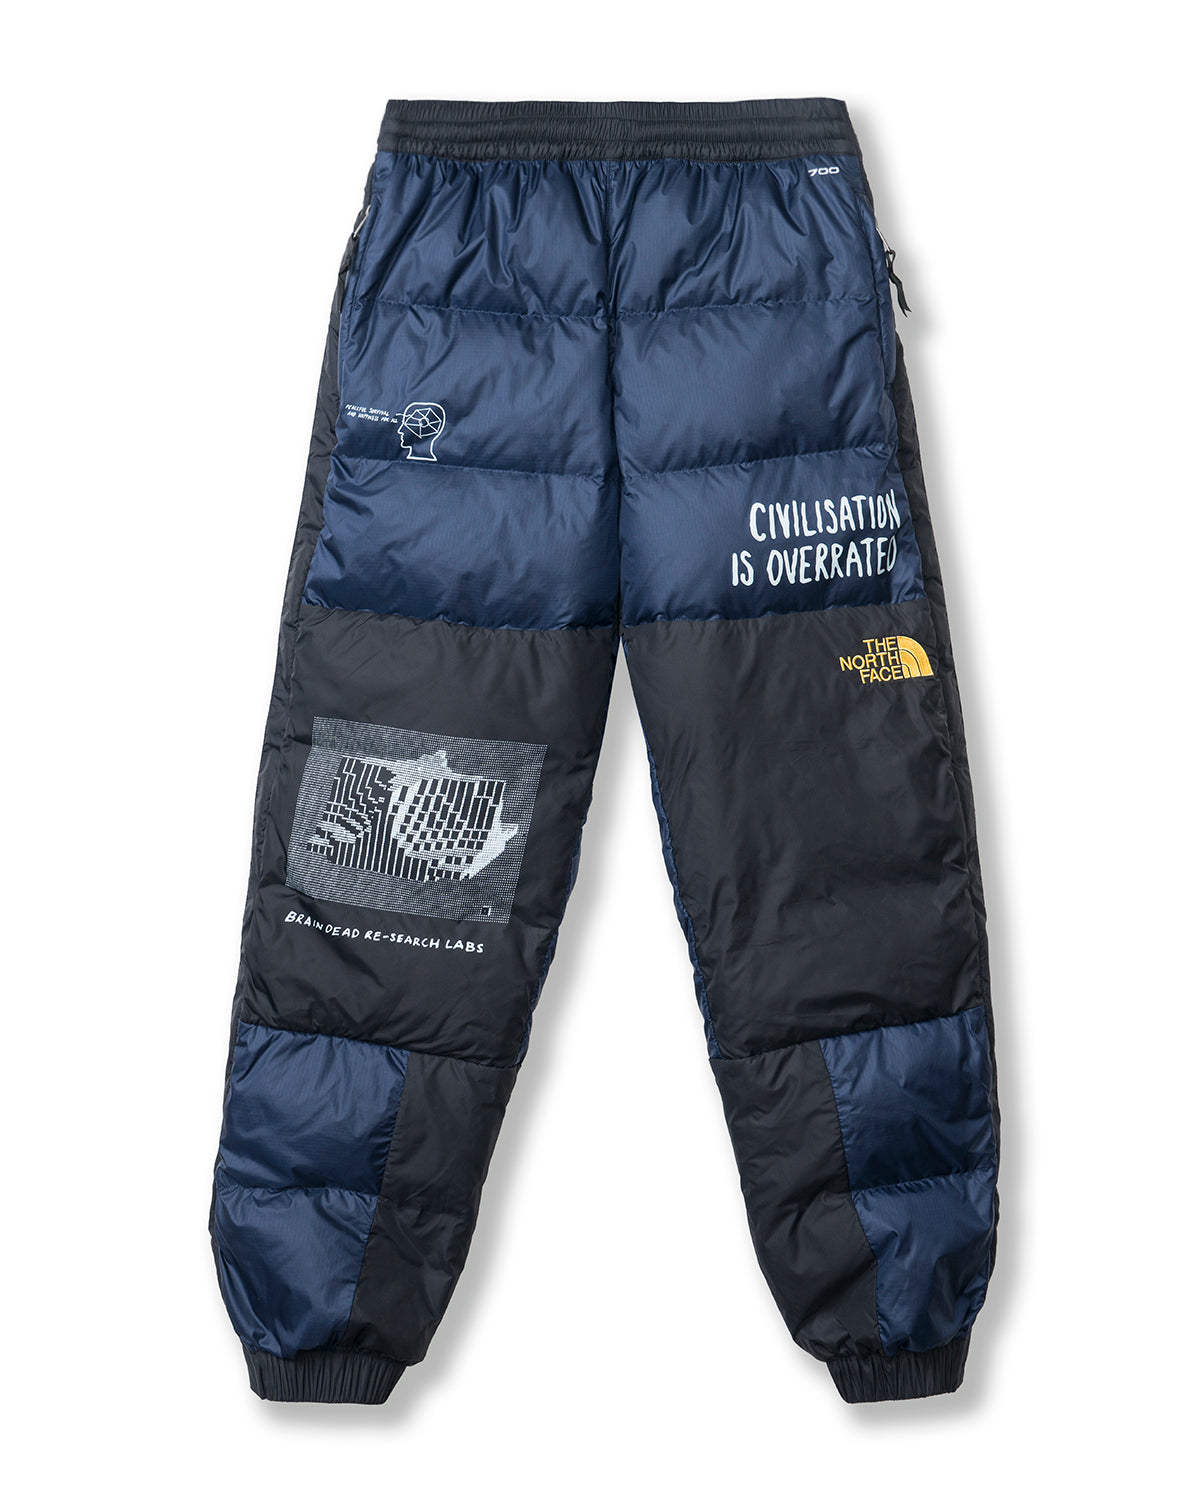 Brain Dead x The North Face Retro Nuptse Pant - Montague Blue